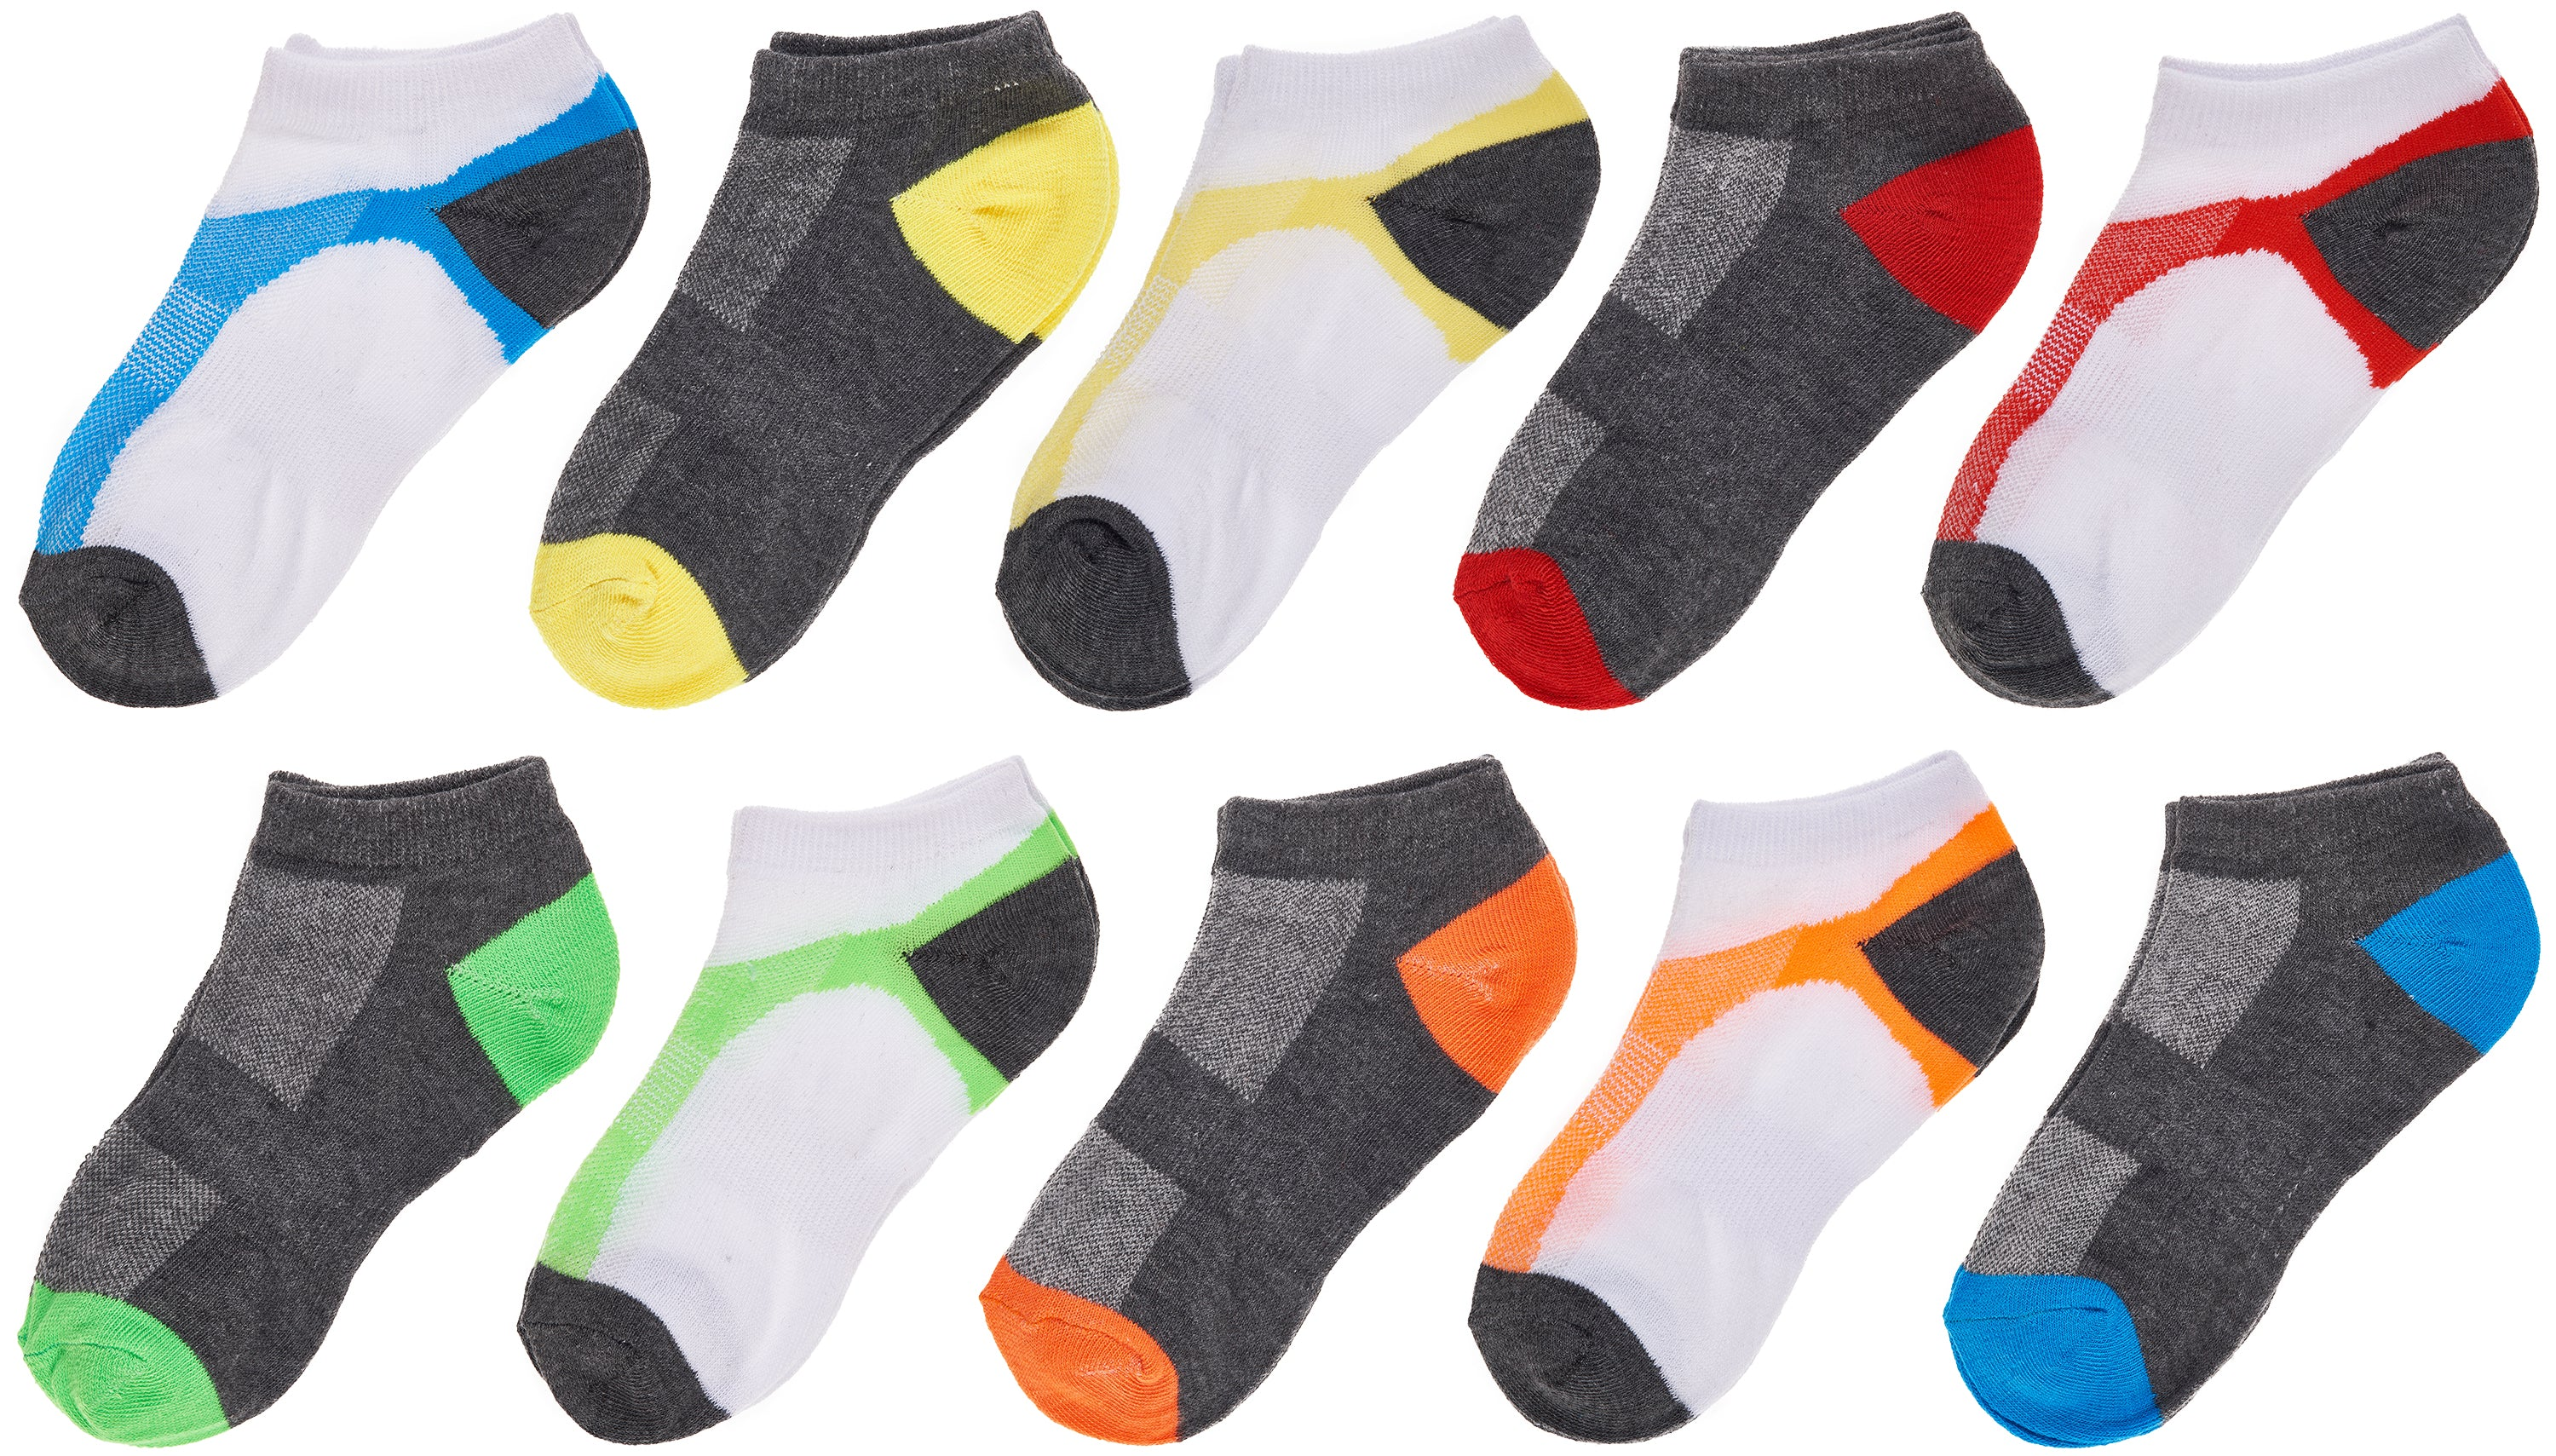 Trimfit Boys 10 Pack Lowcut Socks, Active